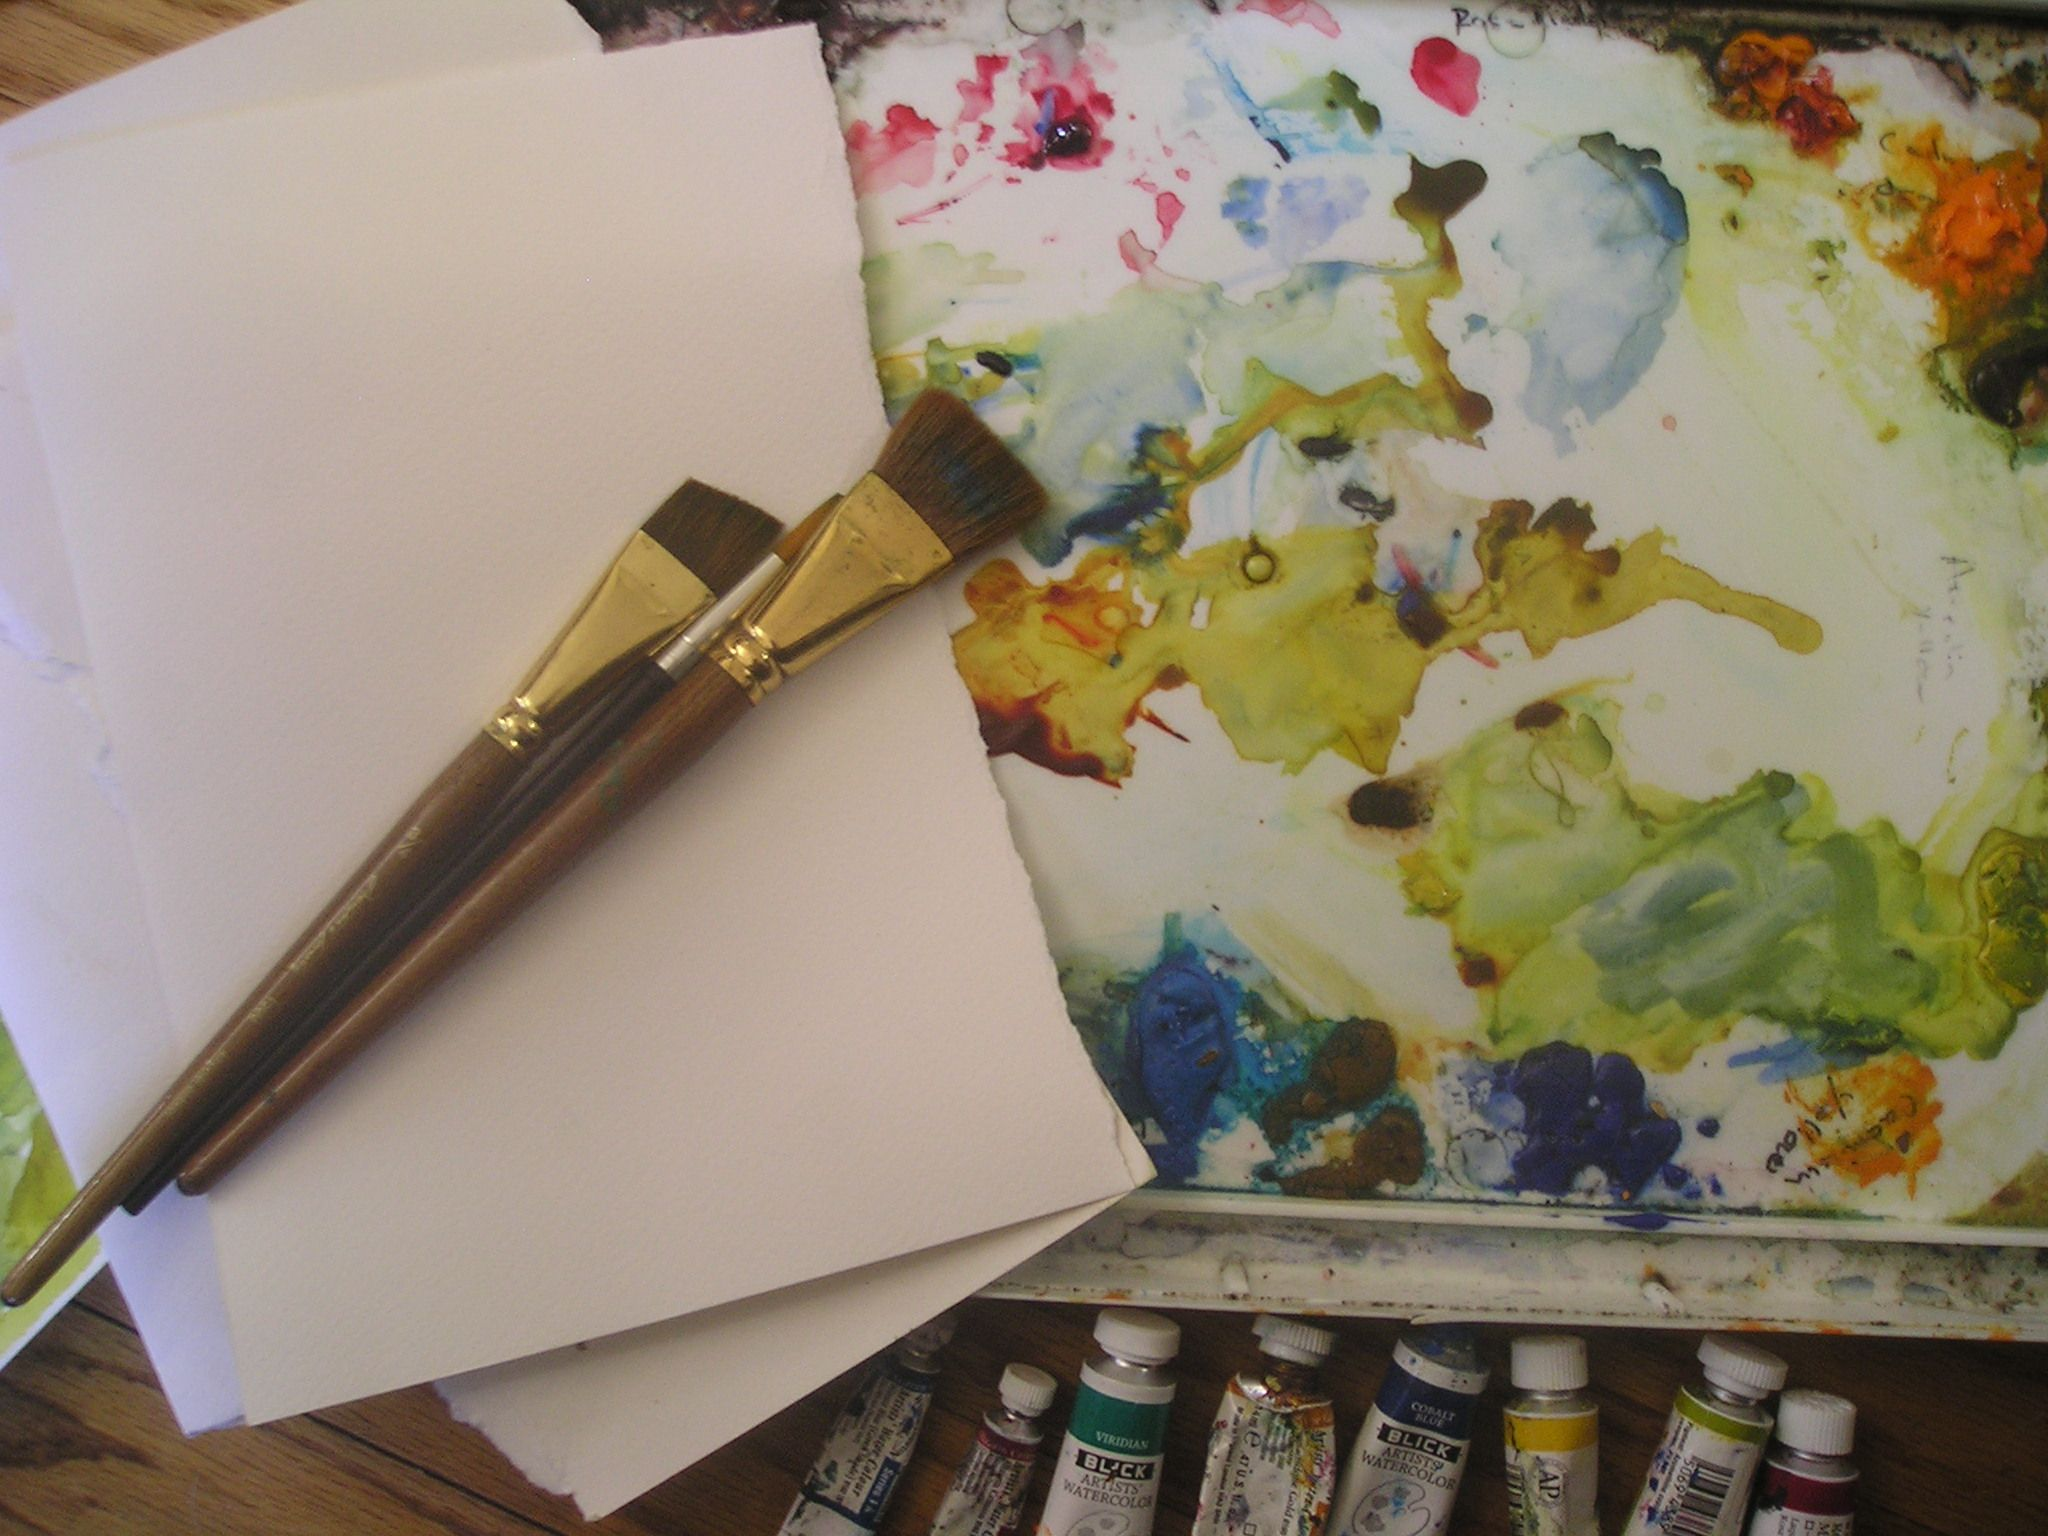 How To Use A Limited Palette To Make Luminous Watercolor Paintings